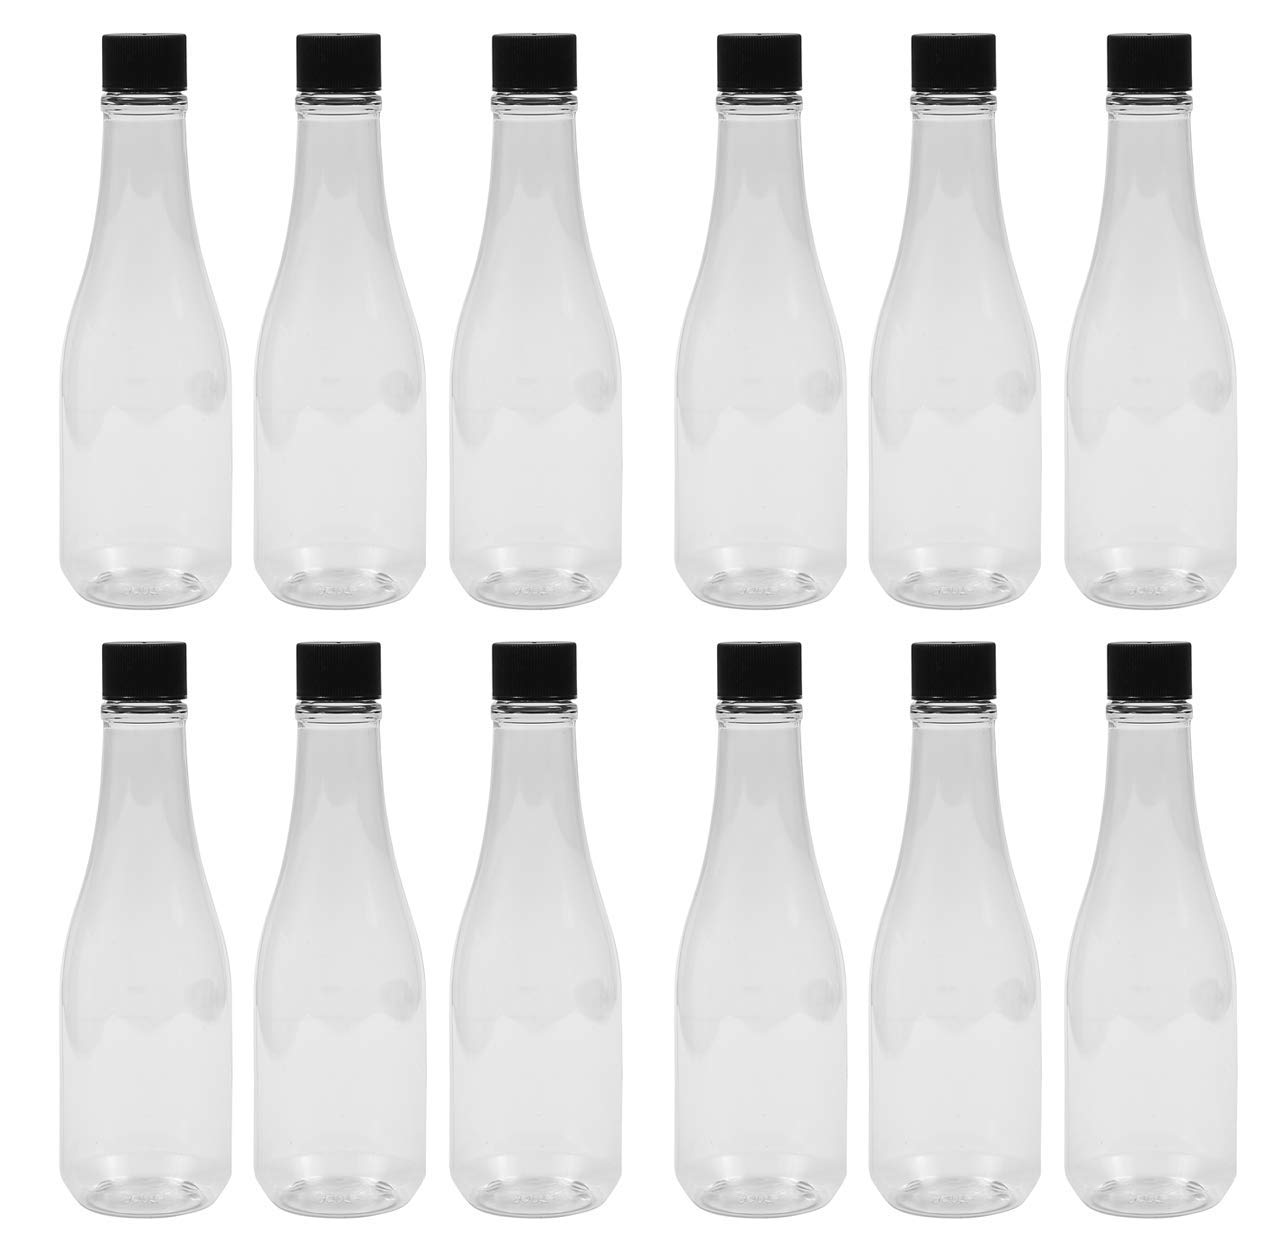 PEXALE 8 OZ Plastic pet HOT Sauce/Woozy Bottles (Black caps, 12)